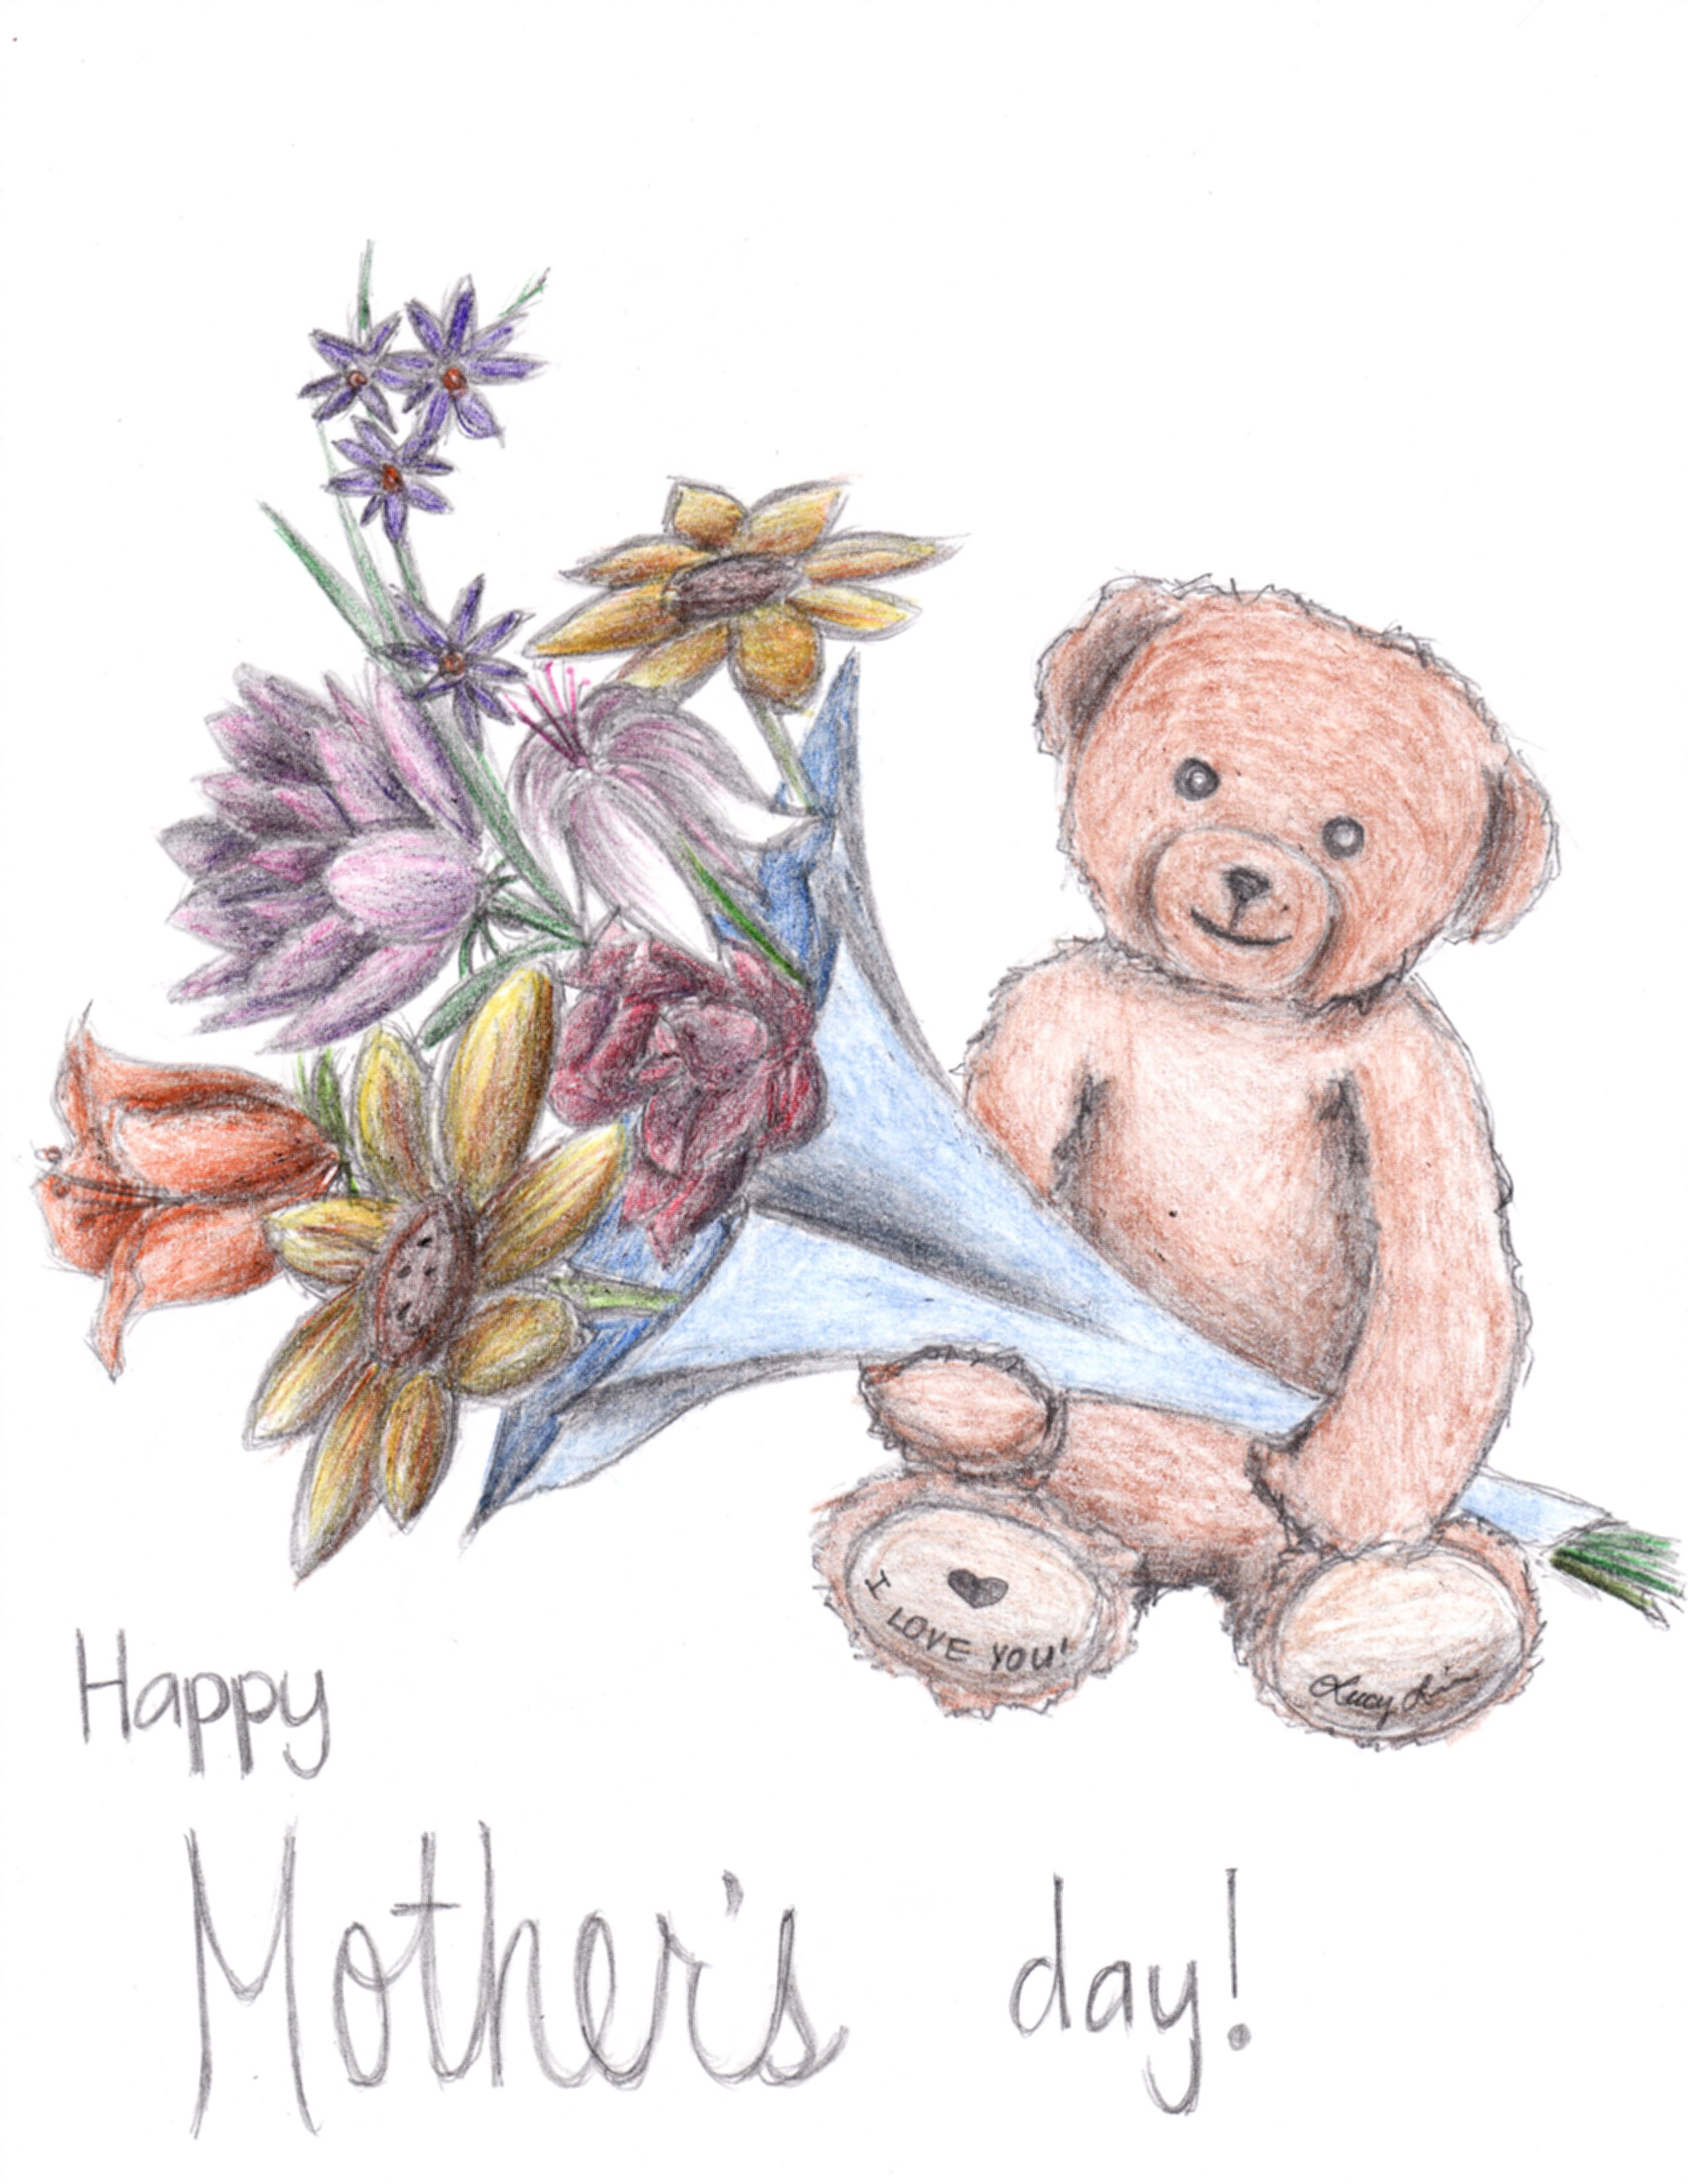 mothers_day_by_fantasydreams46.jpg (2548×3296)